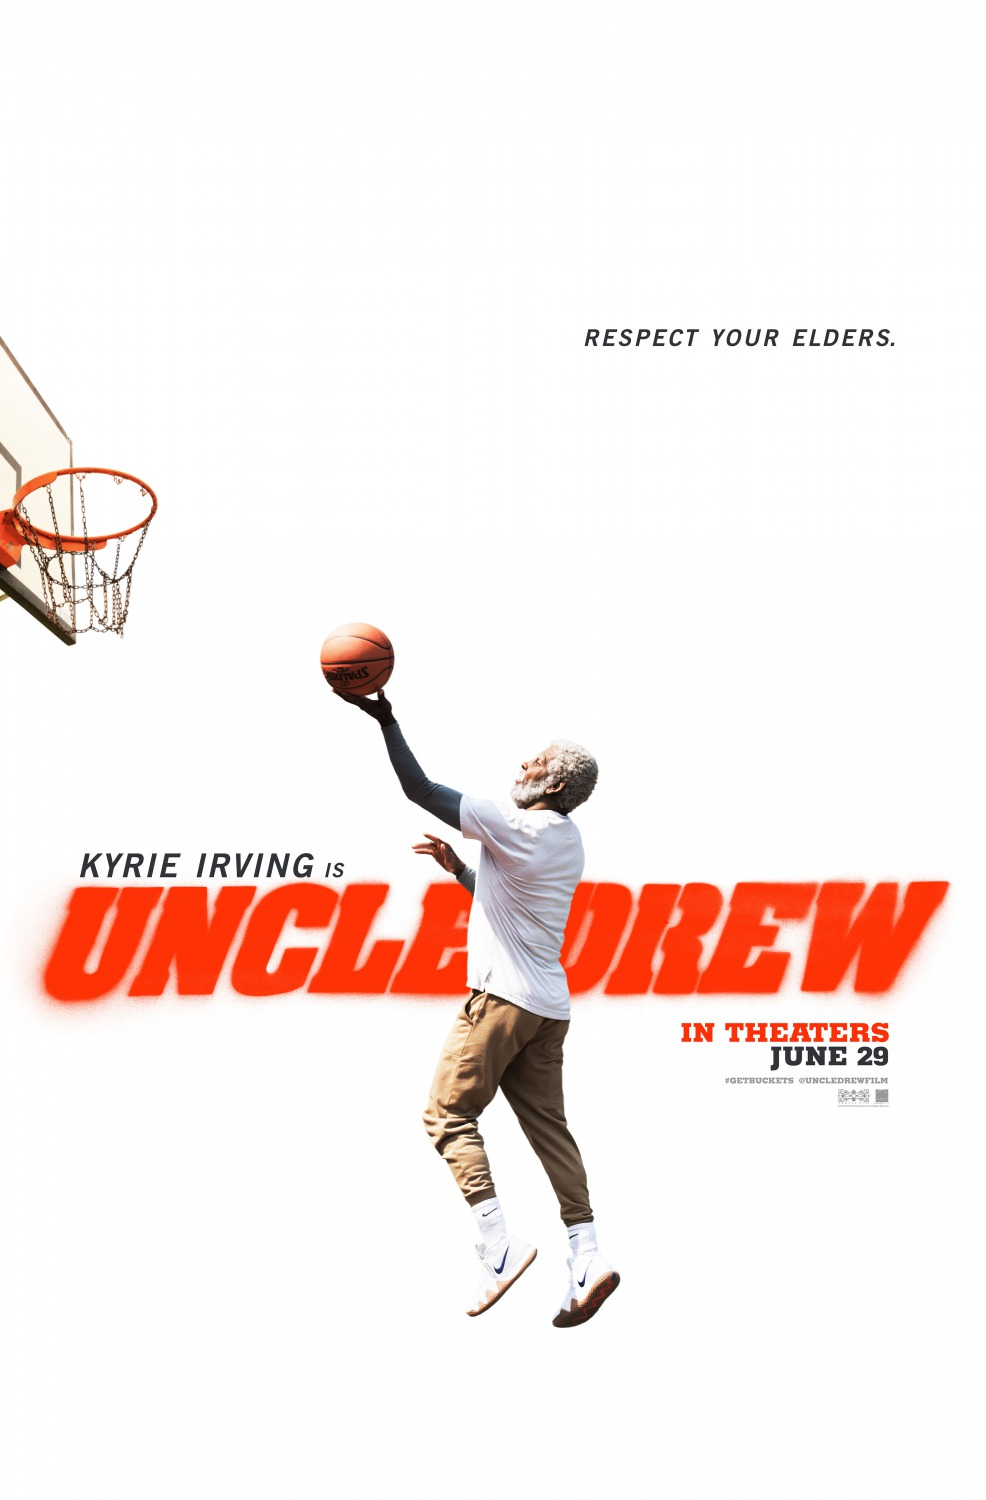 62 uncle drew movie poster